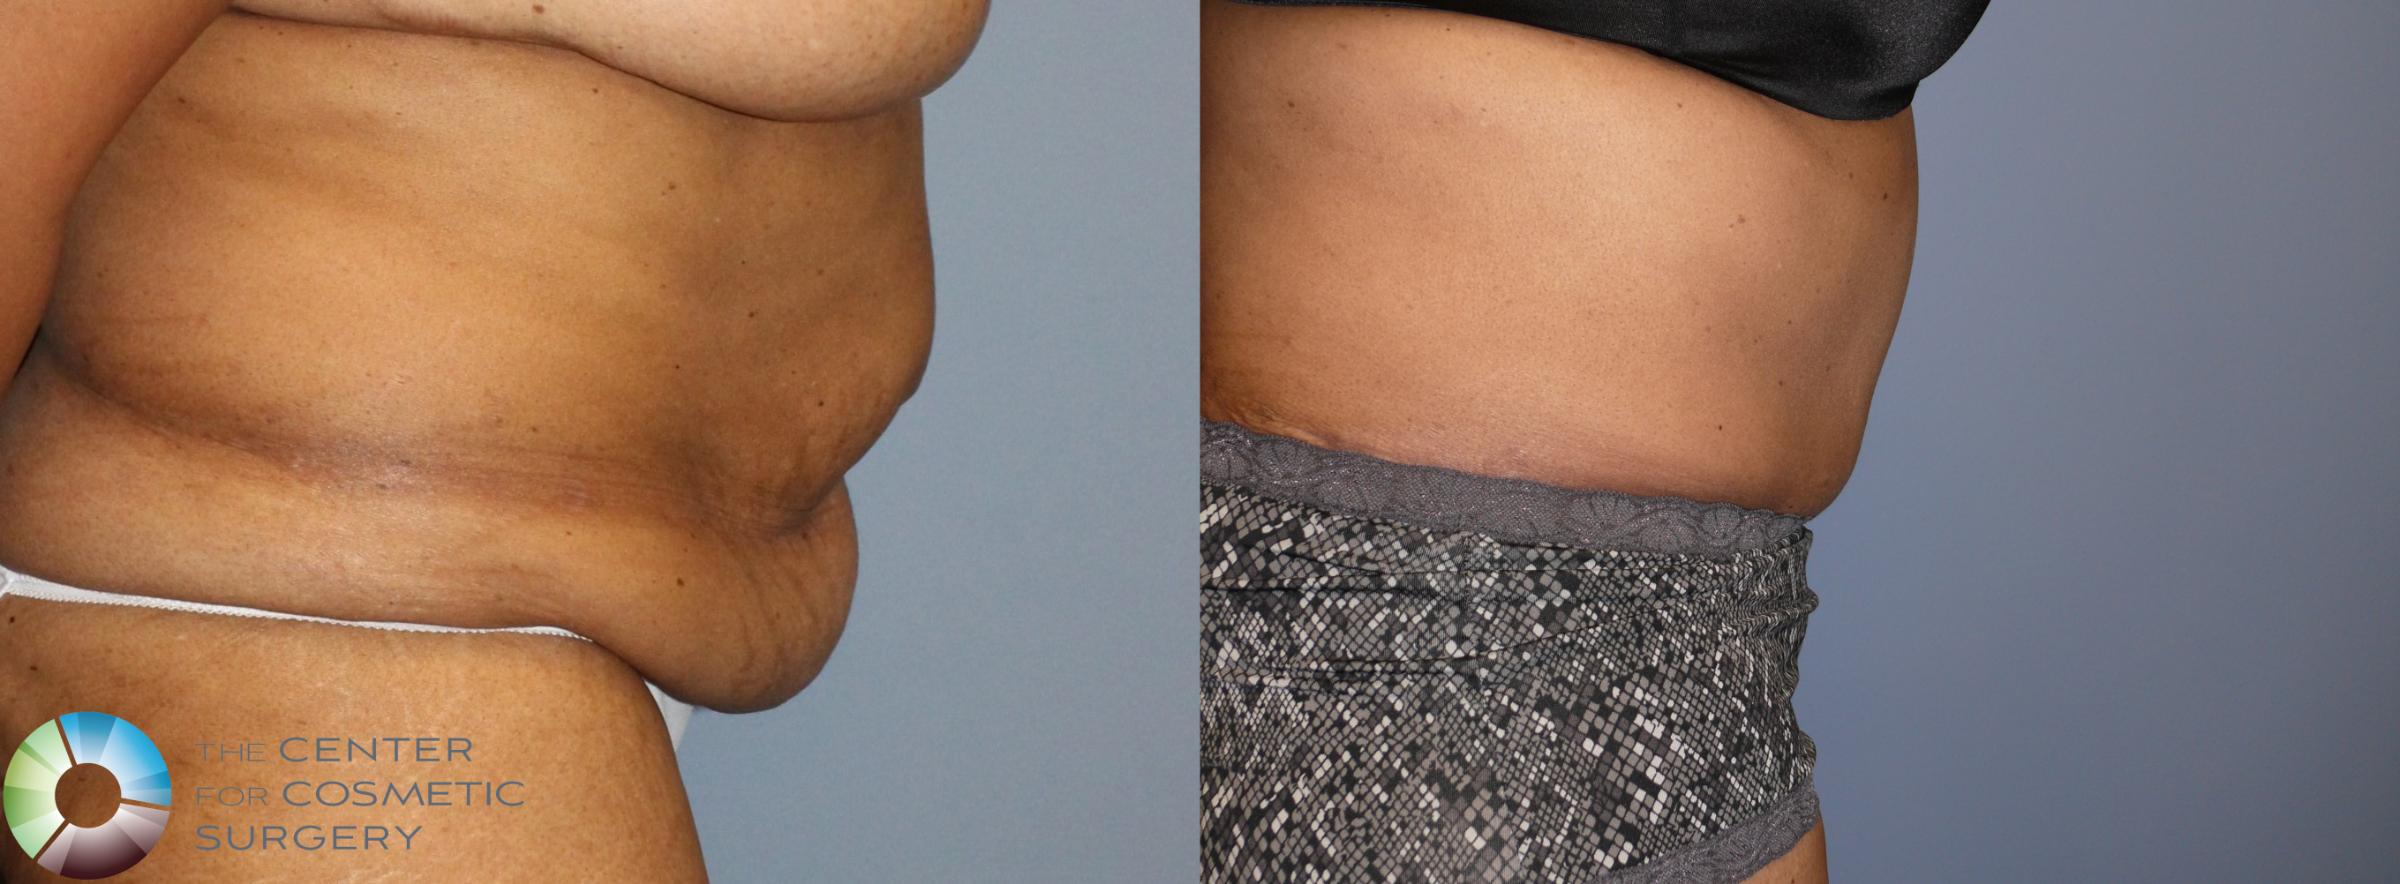 Tummy Tuck Case 923 Before & After View #3 | Golden, CO | The Center for Cosmetic Surgery